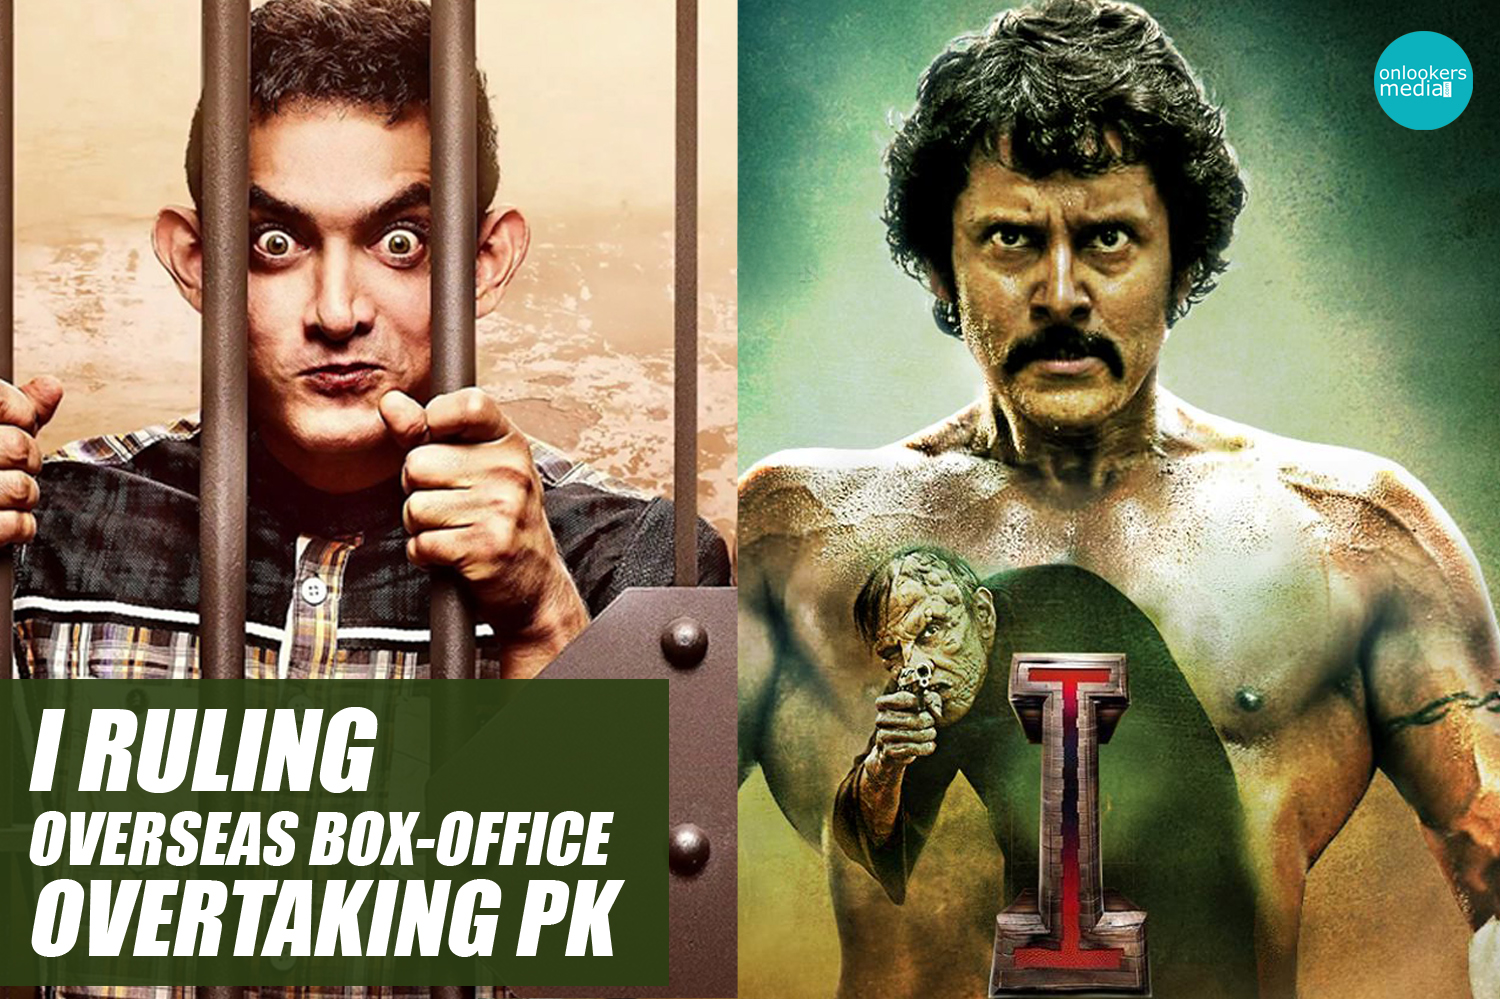 I ruling overseas box-office overtaking PK-I movie collection record-Vikram-Shankar-Onlookers Media